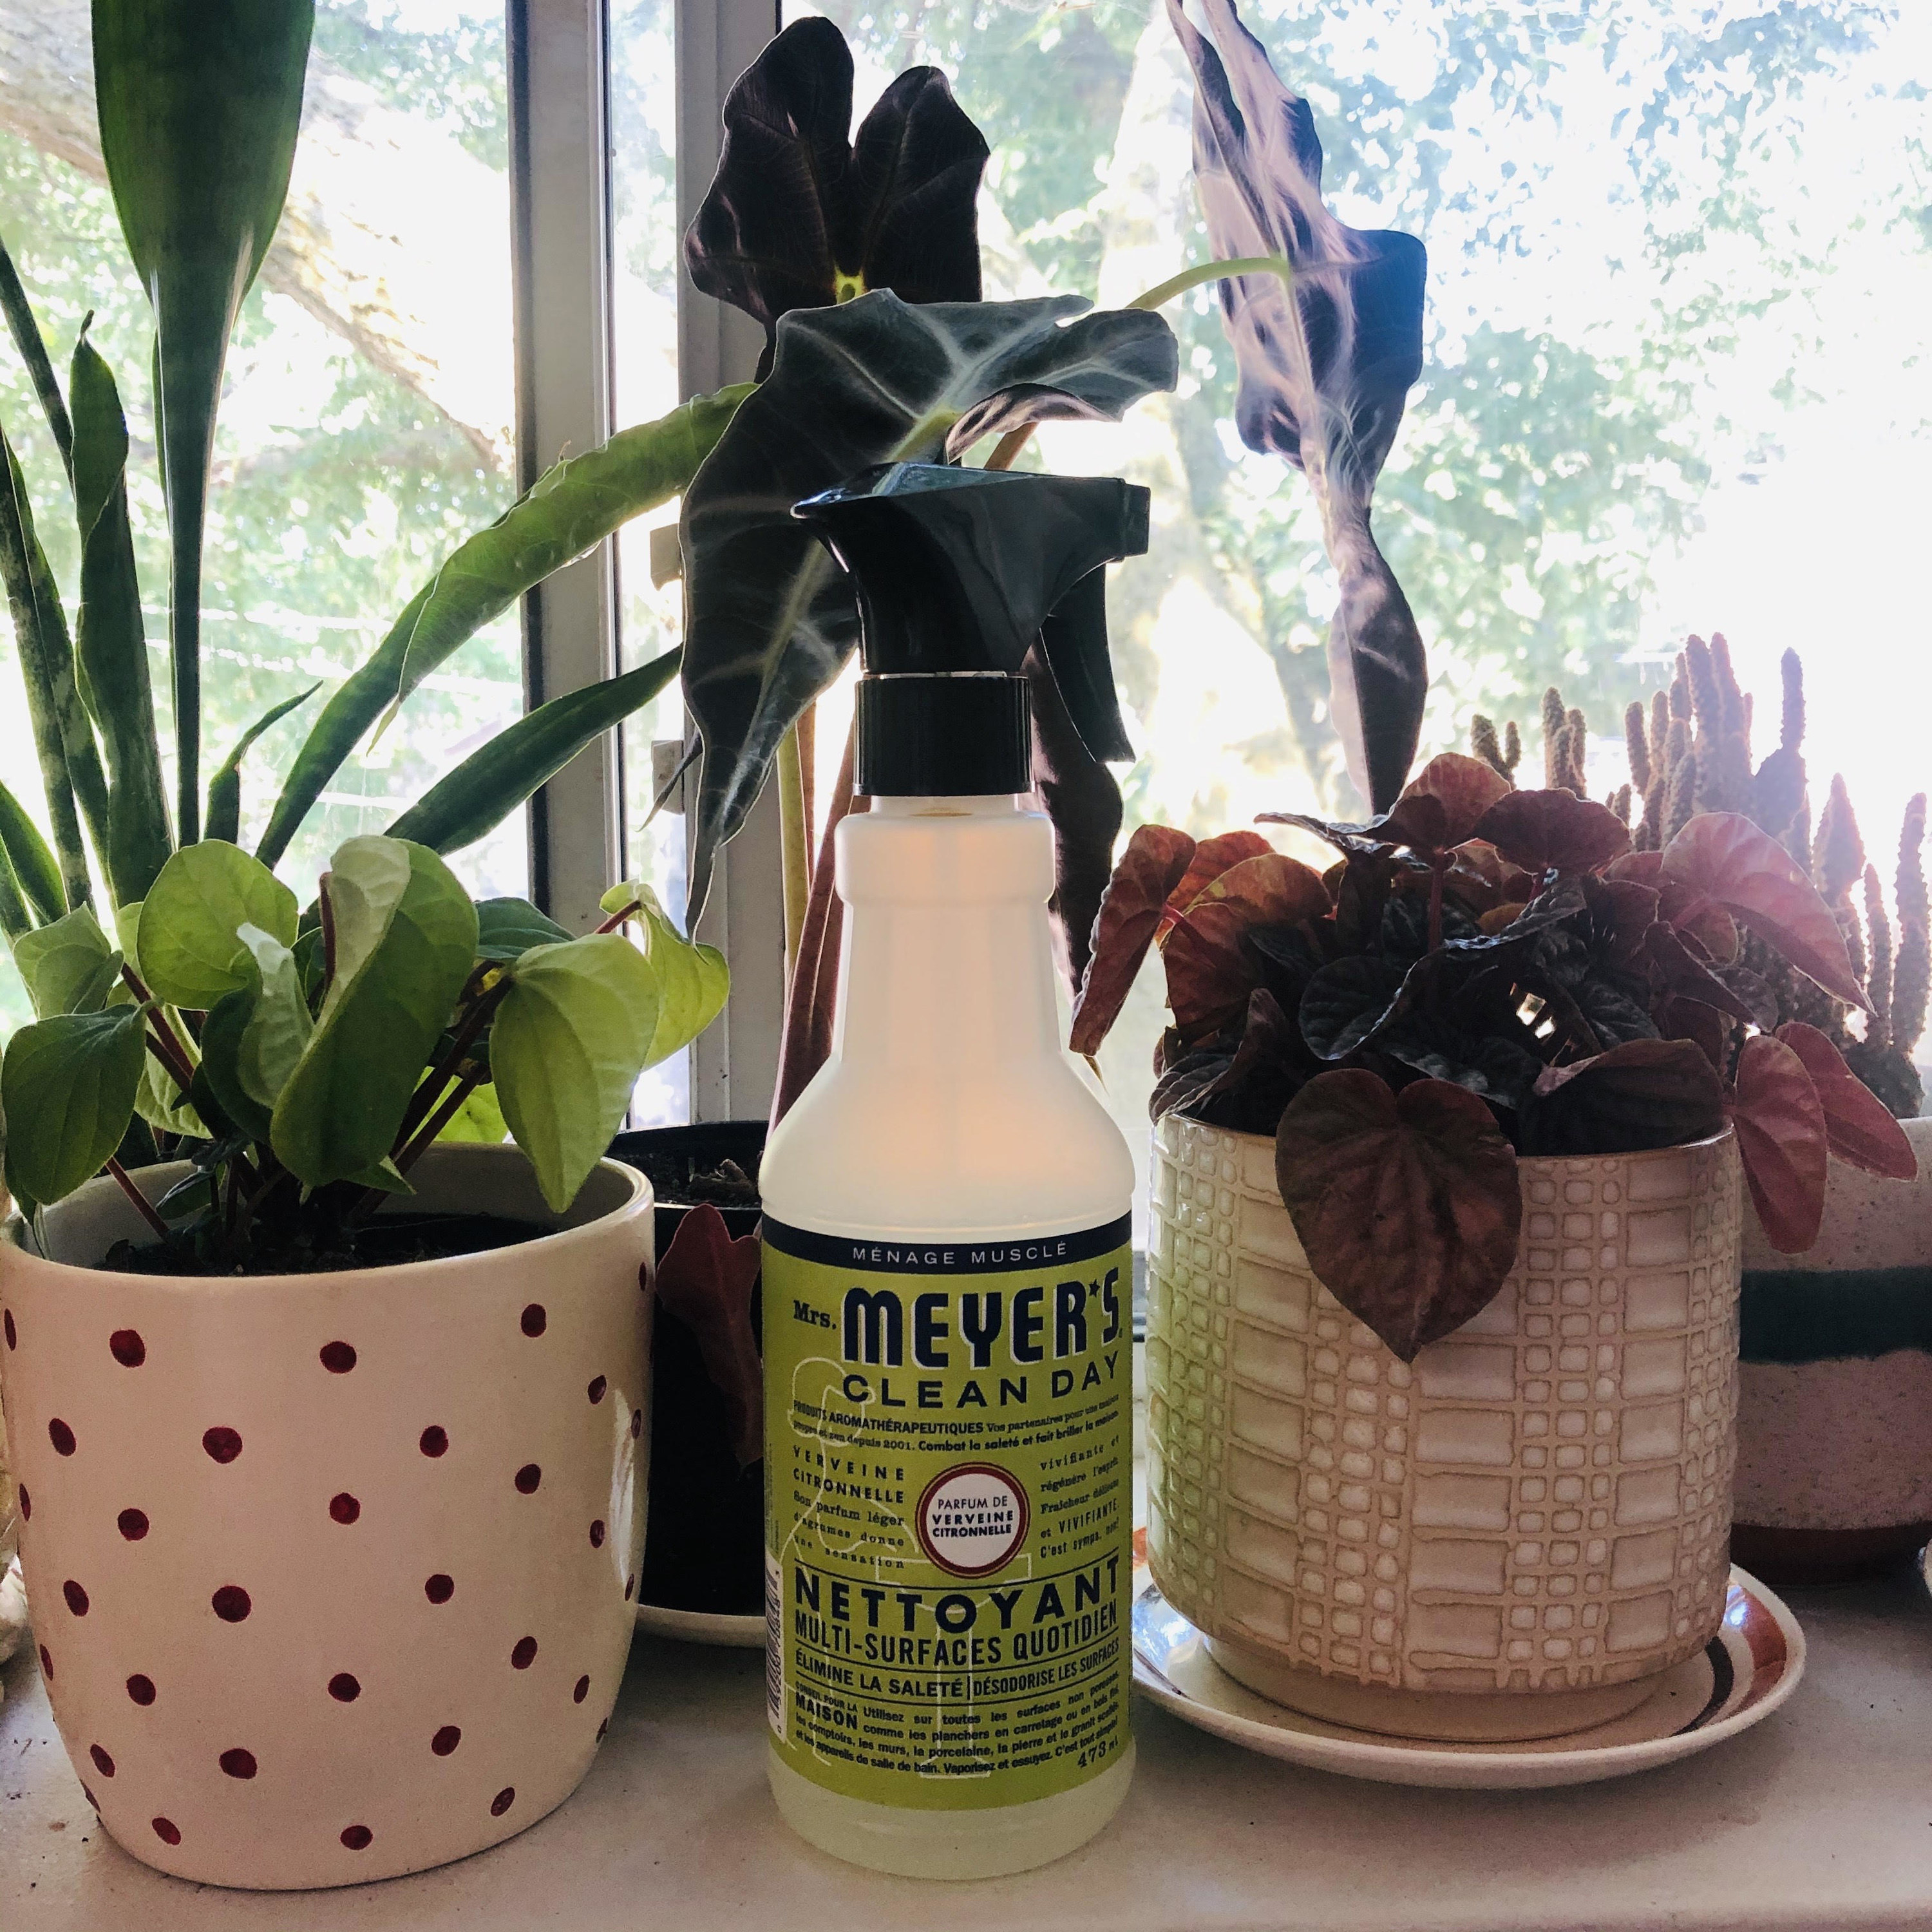 A bottle of multi-surface cleaner surrounded by plants